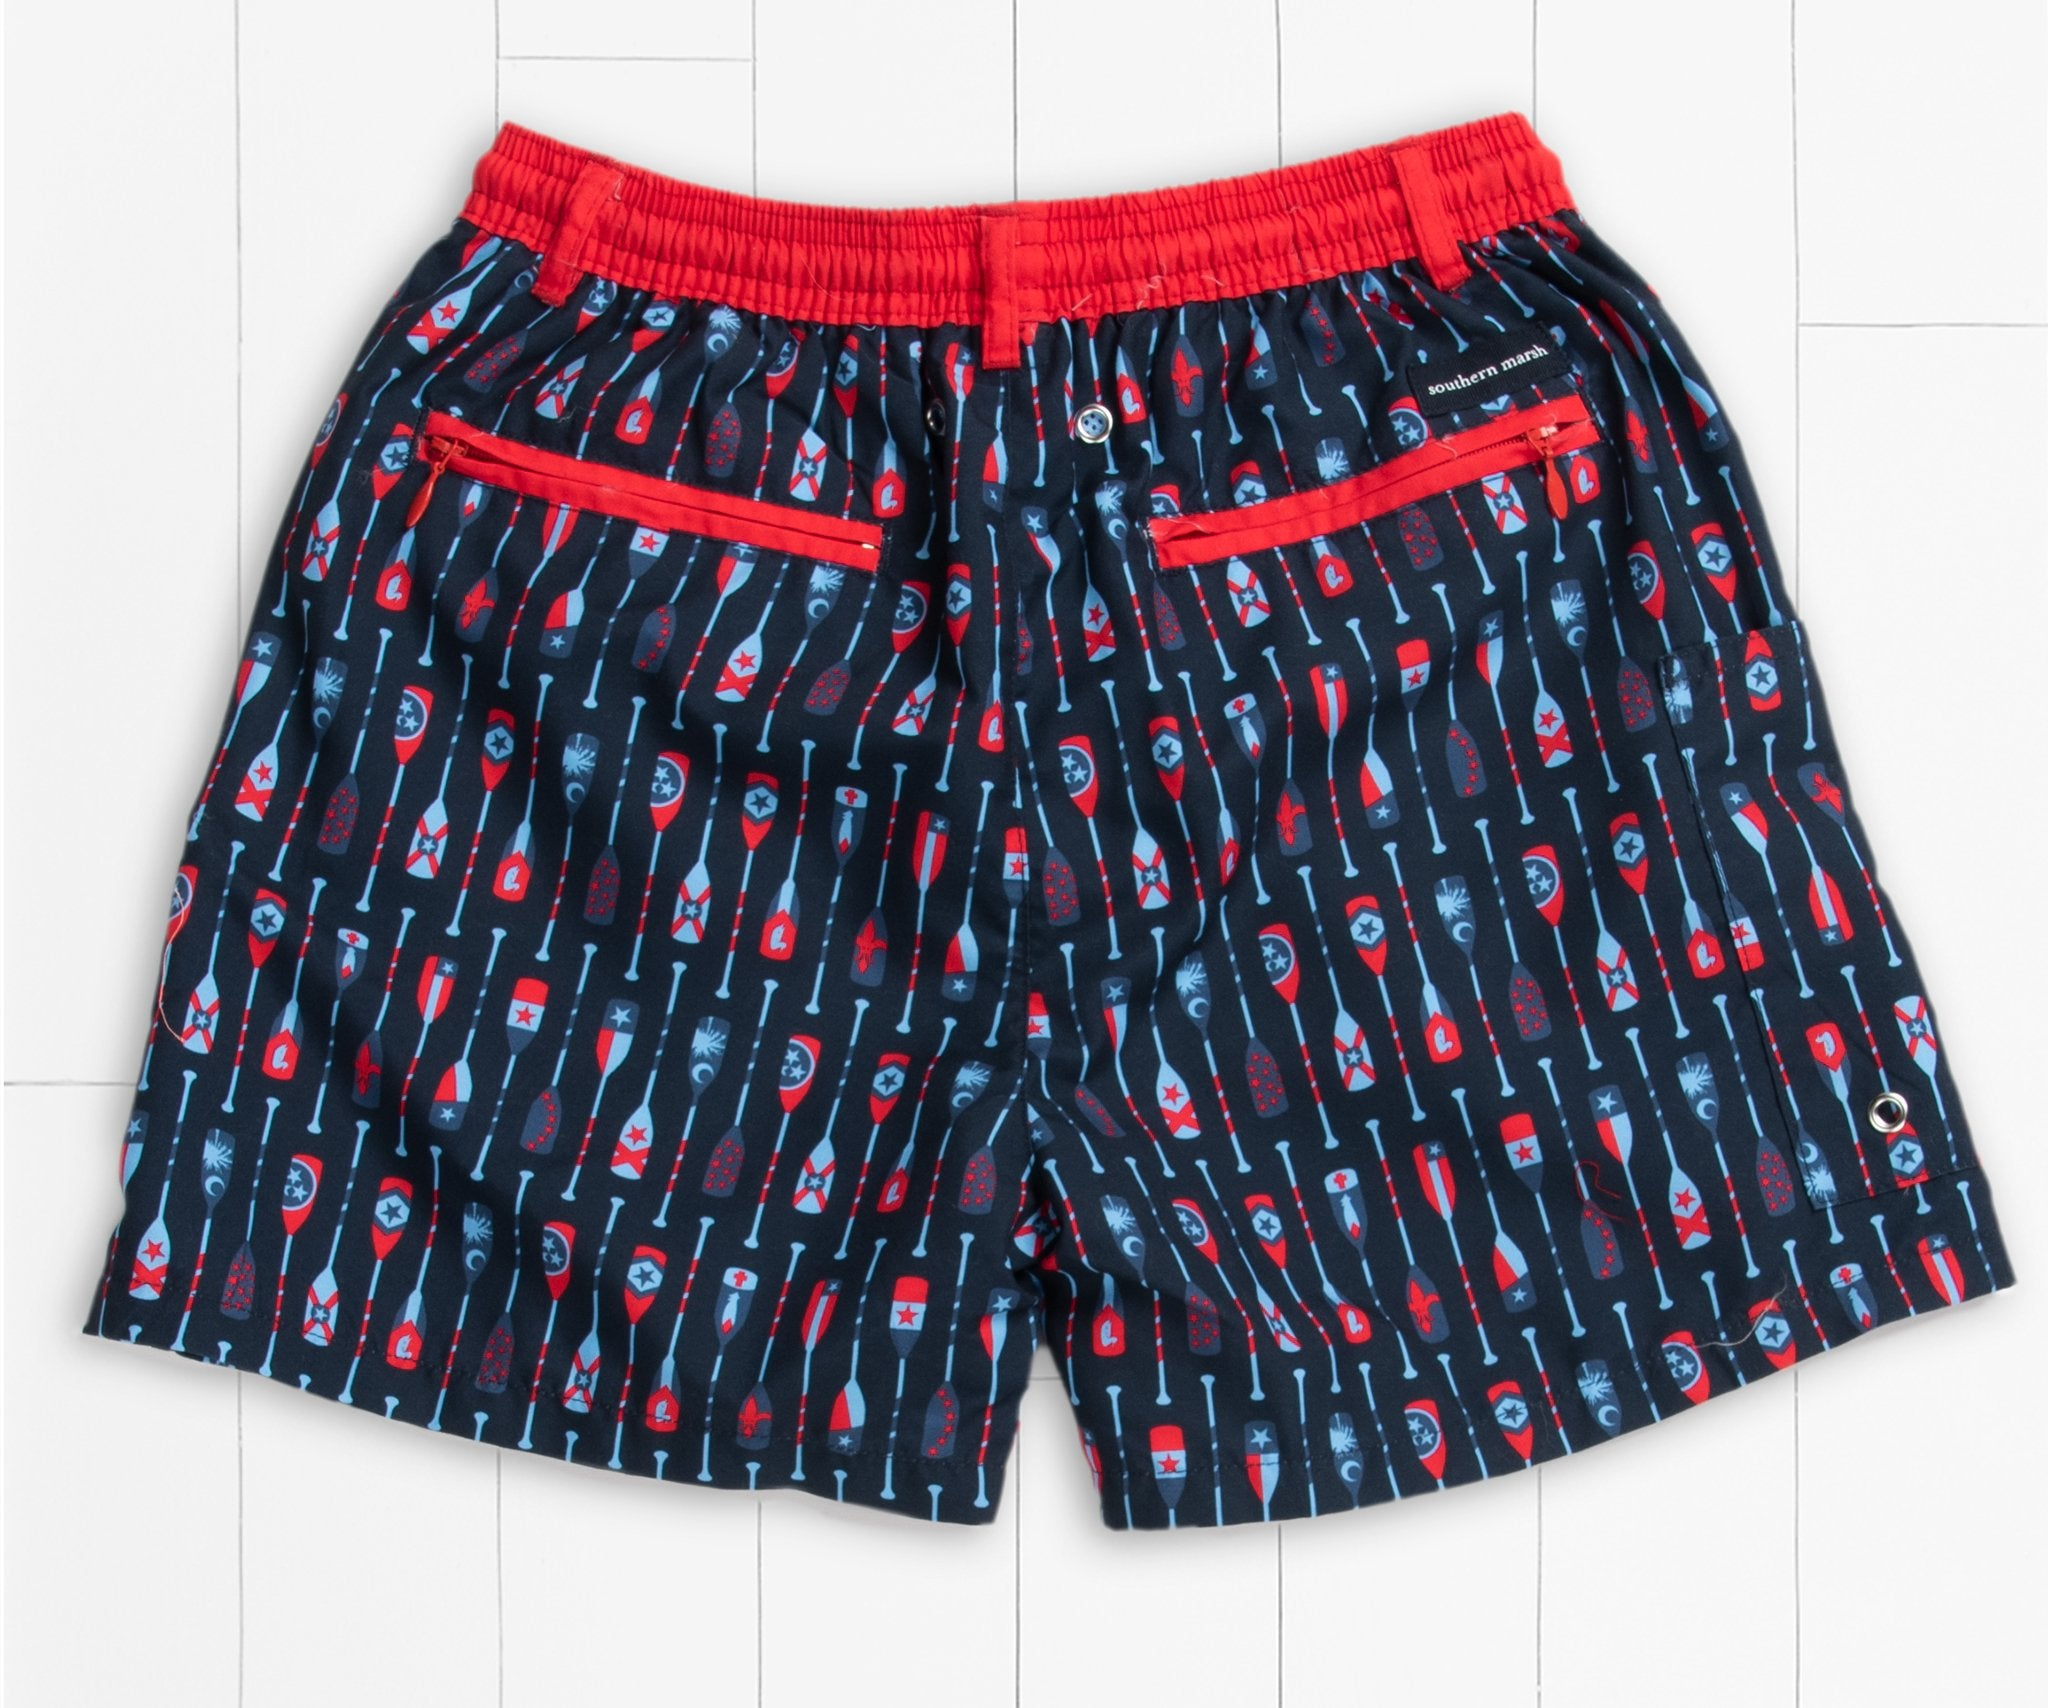 Southern Marsh Youth Paddle Dockside Swim Trunk in Navy and Red